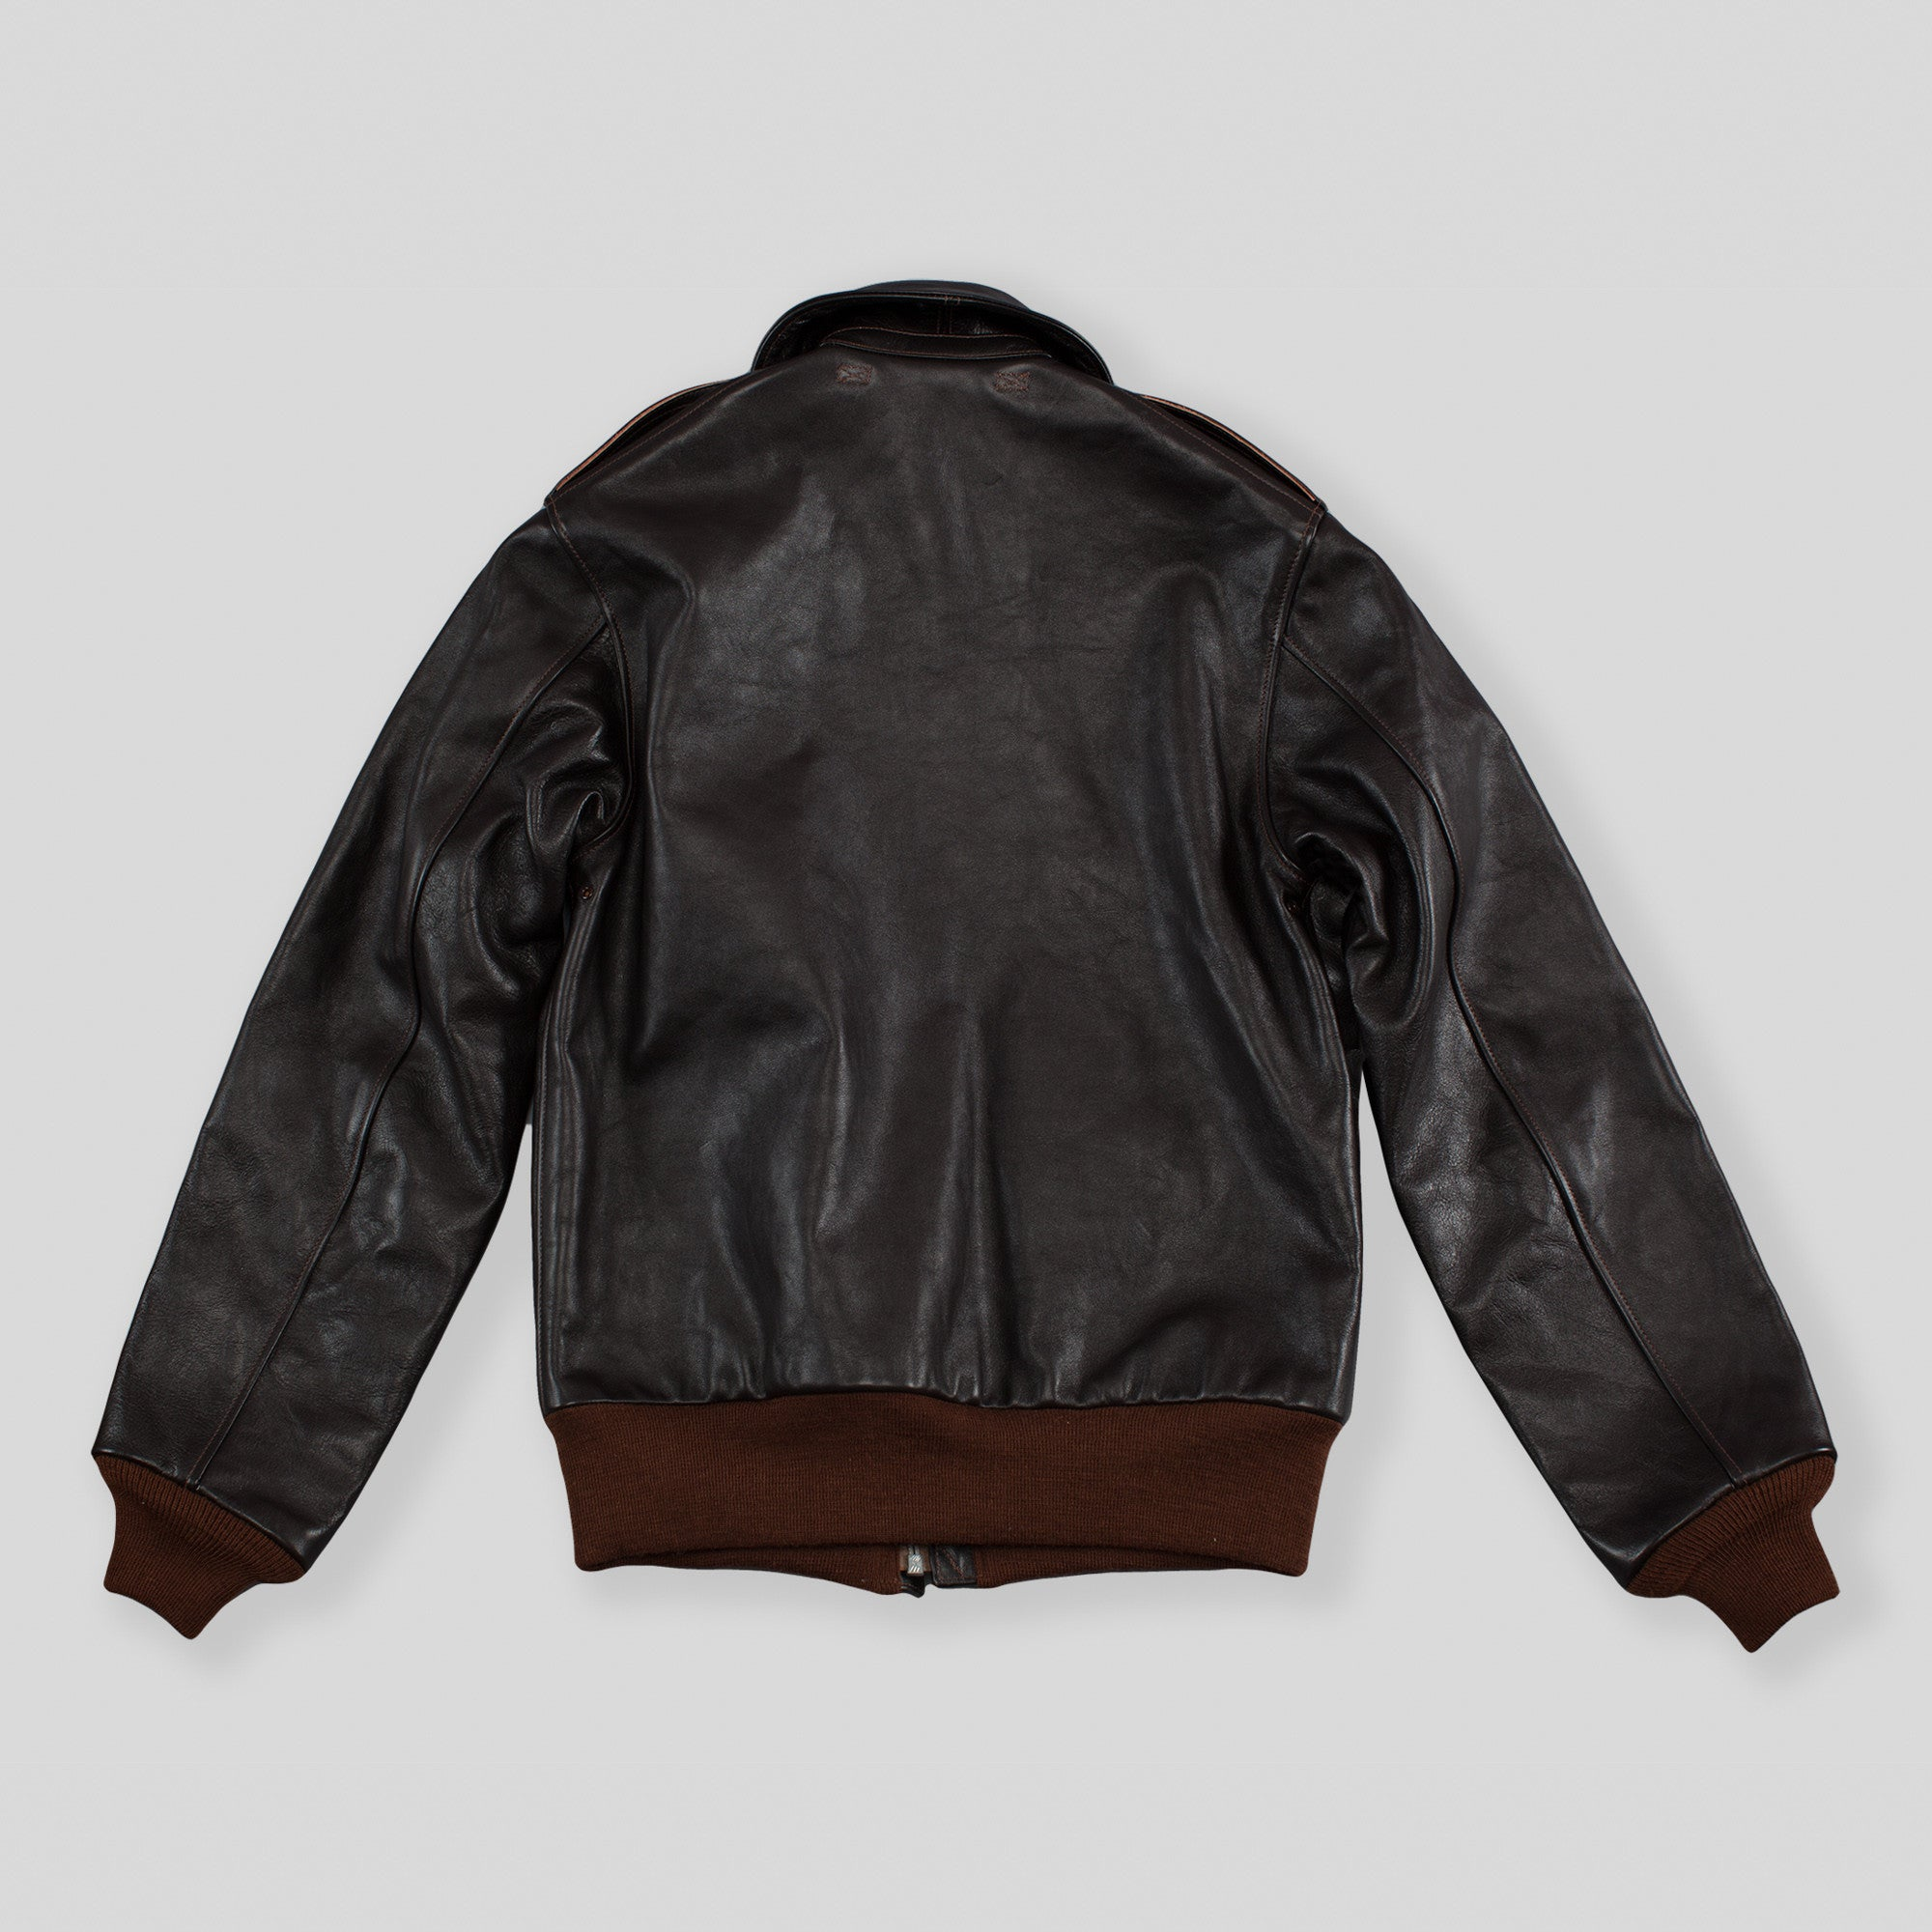 The Real Mccoy S The Real Mccoy S Type A 2 Leather Jacket Seal